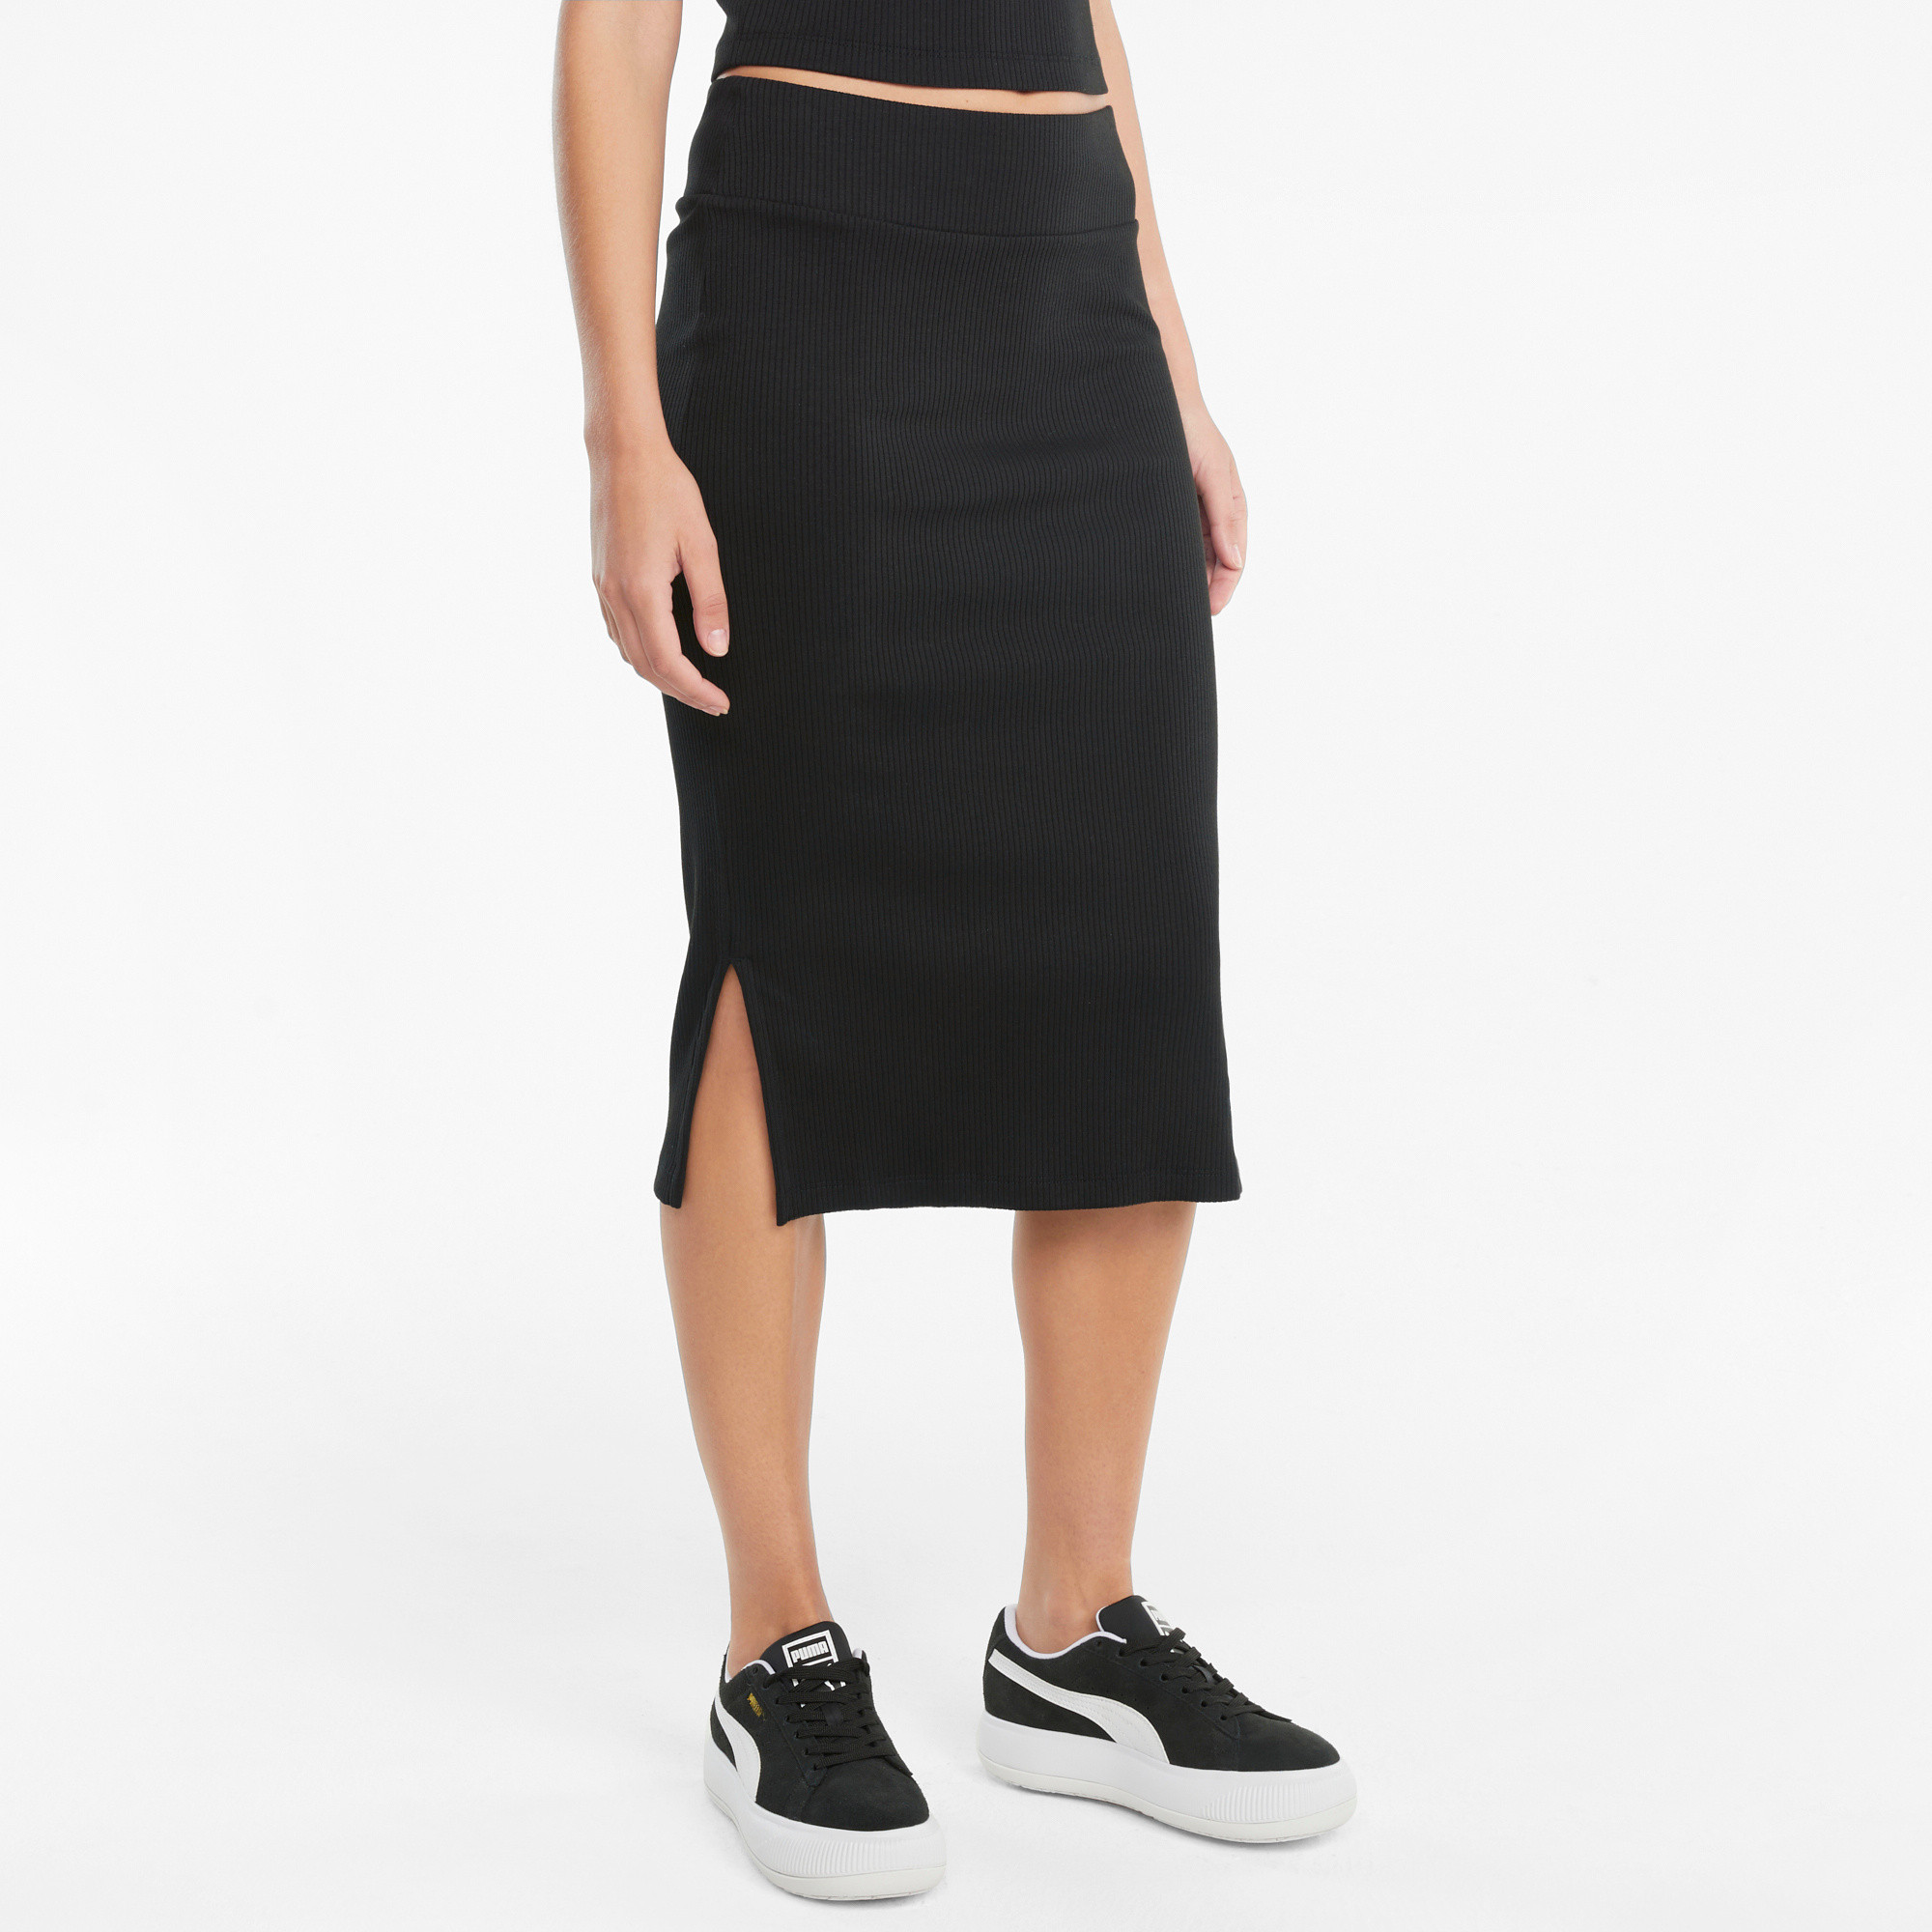 Gonna sportiva midi a coste Classics Collection, Nero, large image number 2